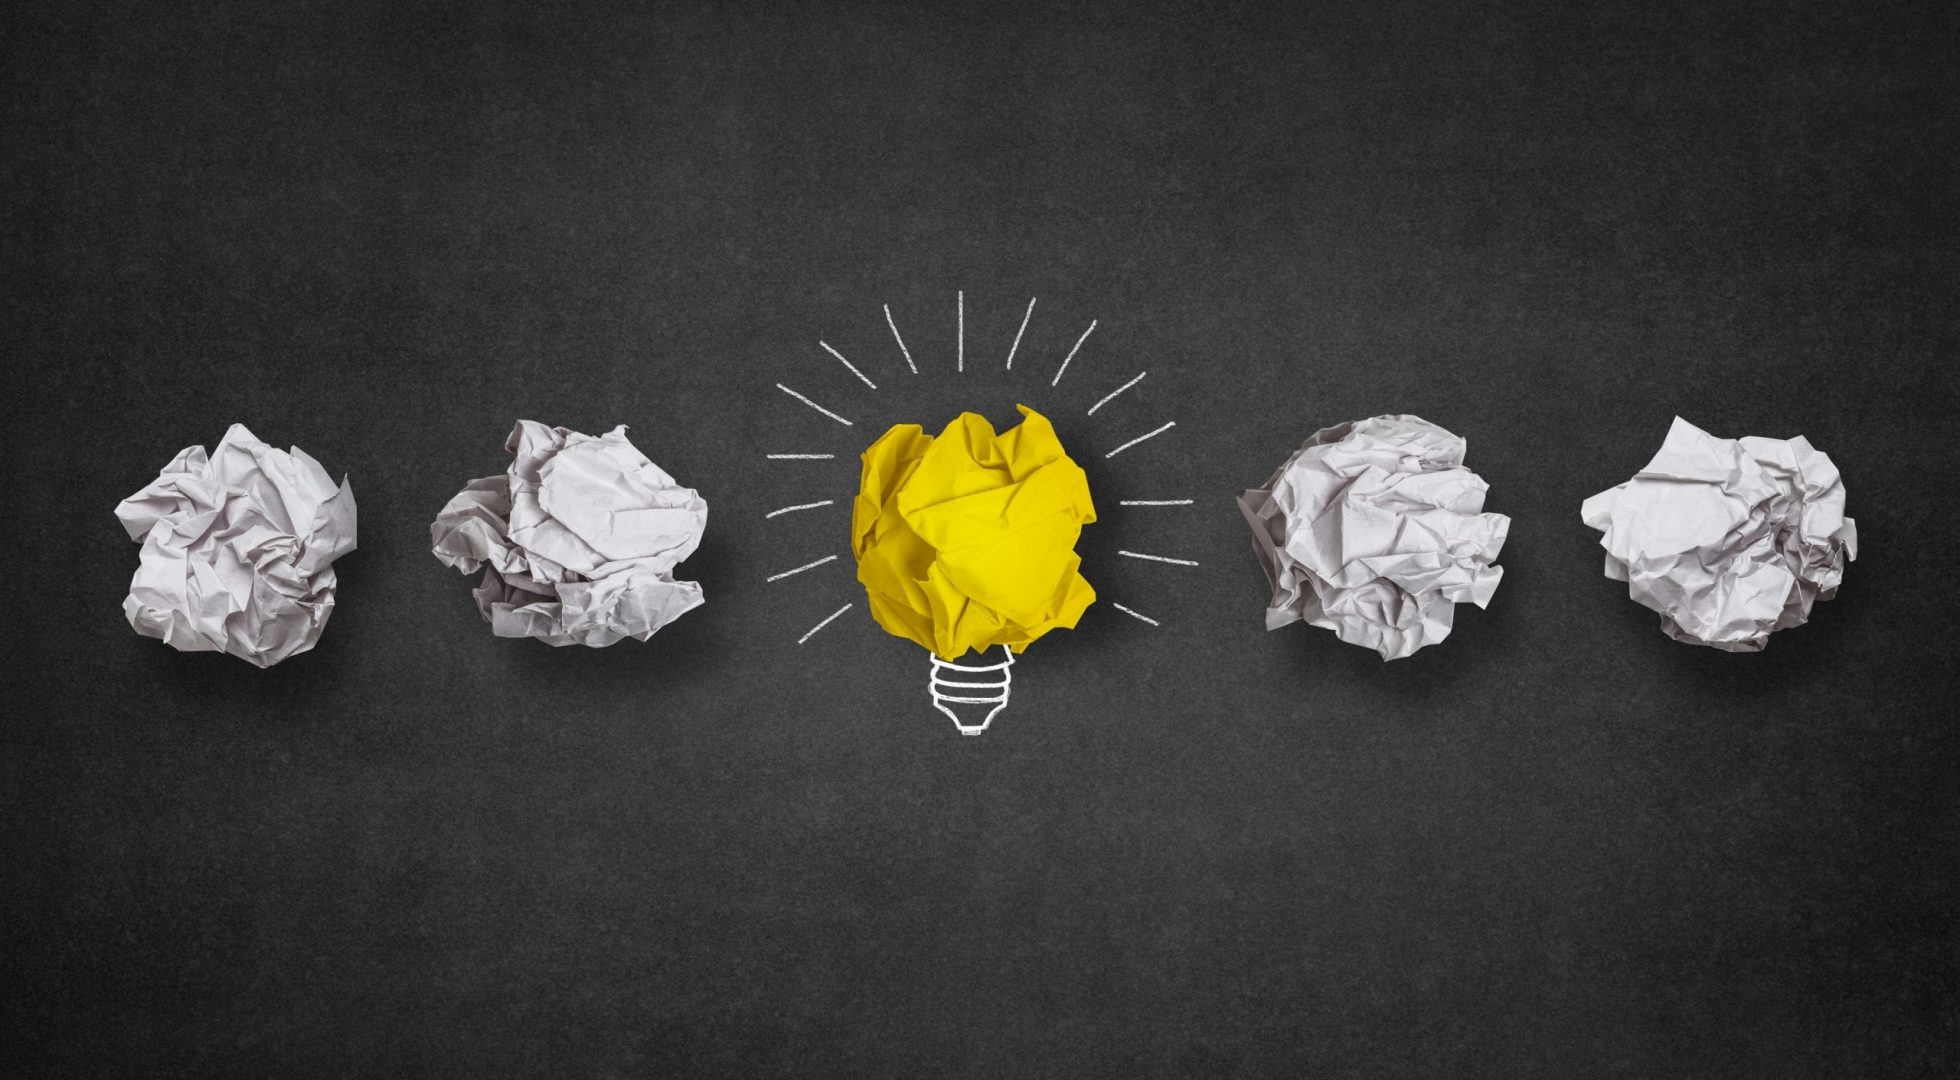 light-bulb-made-from-yellow-paper-ball